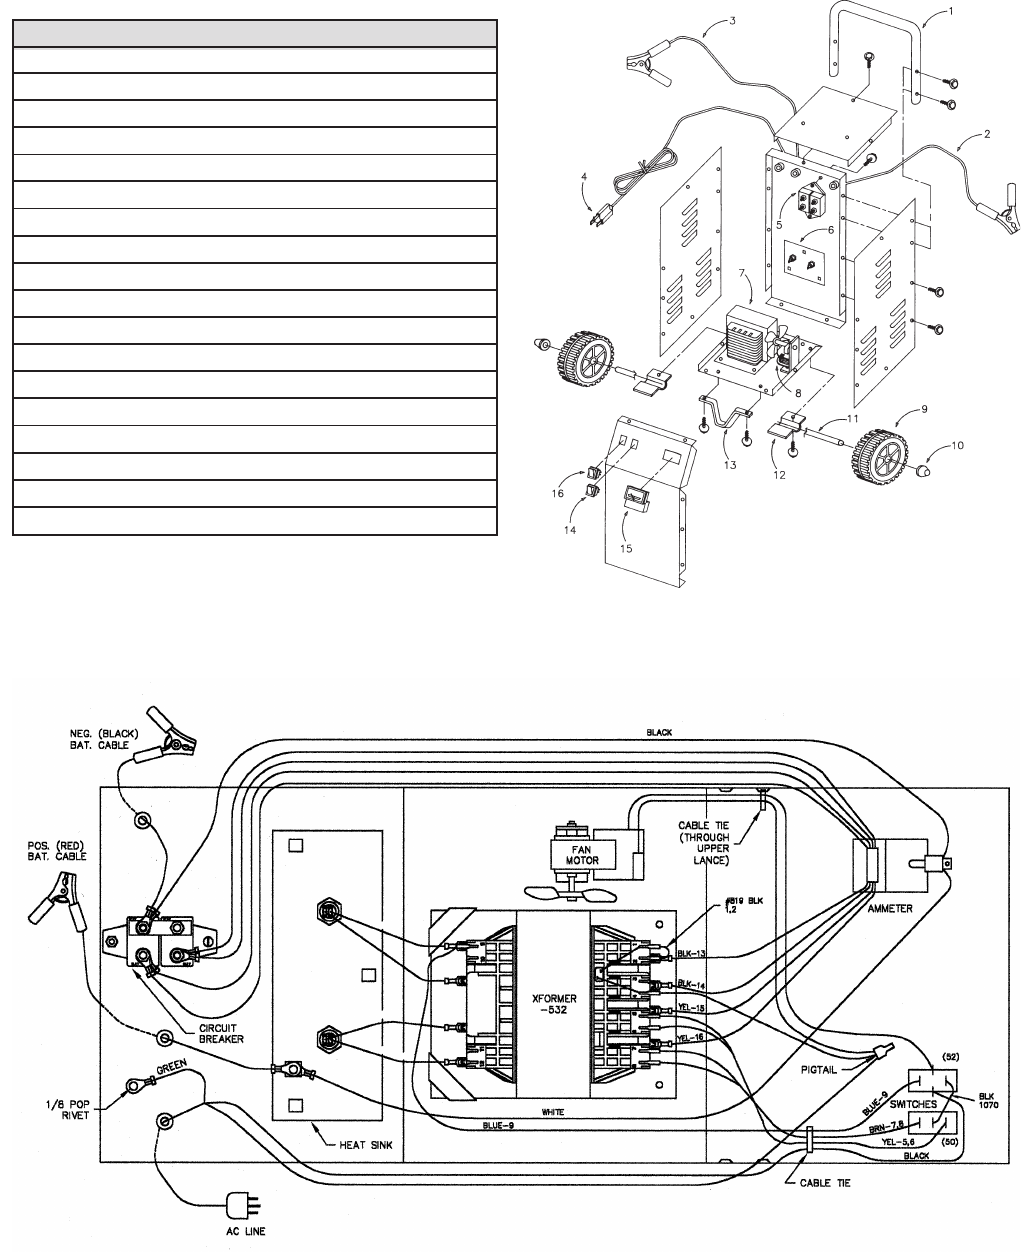 schumacher battery charger se wiring diagram wiring diagrams page 4 of sears battery charger 200 71231 user